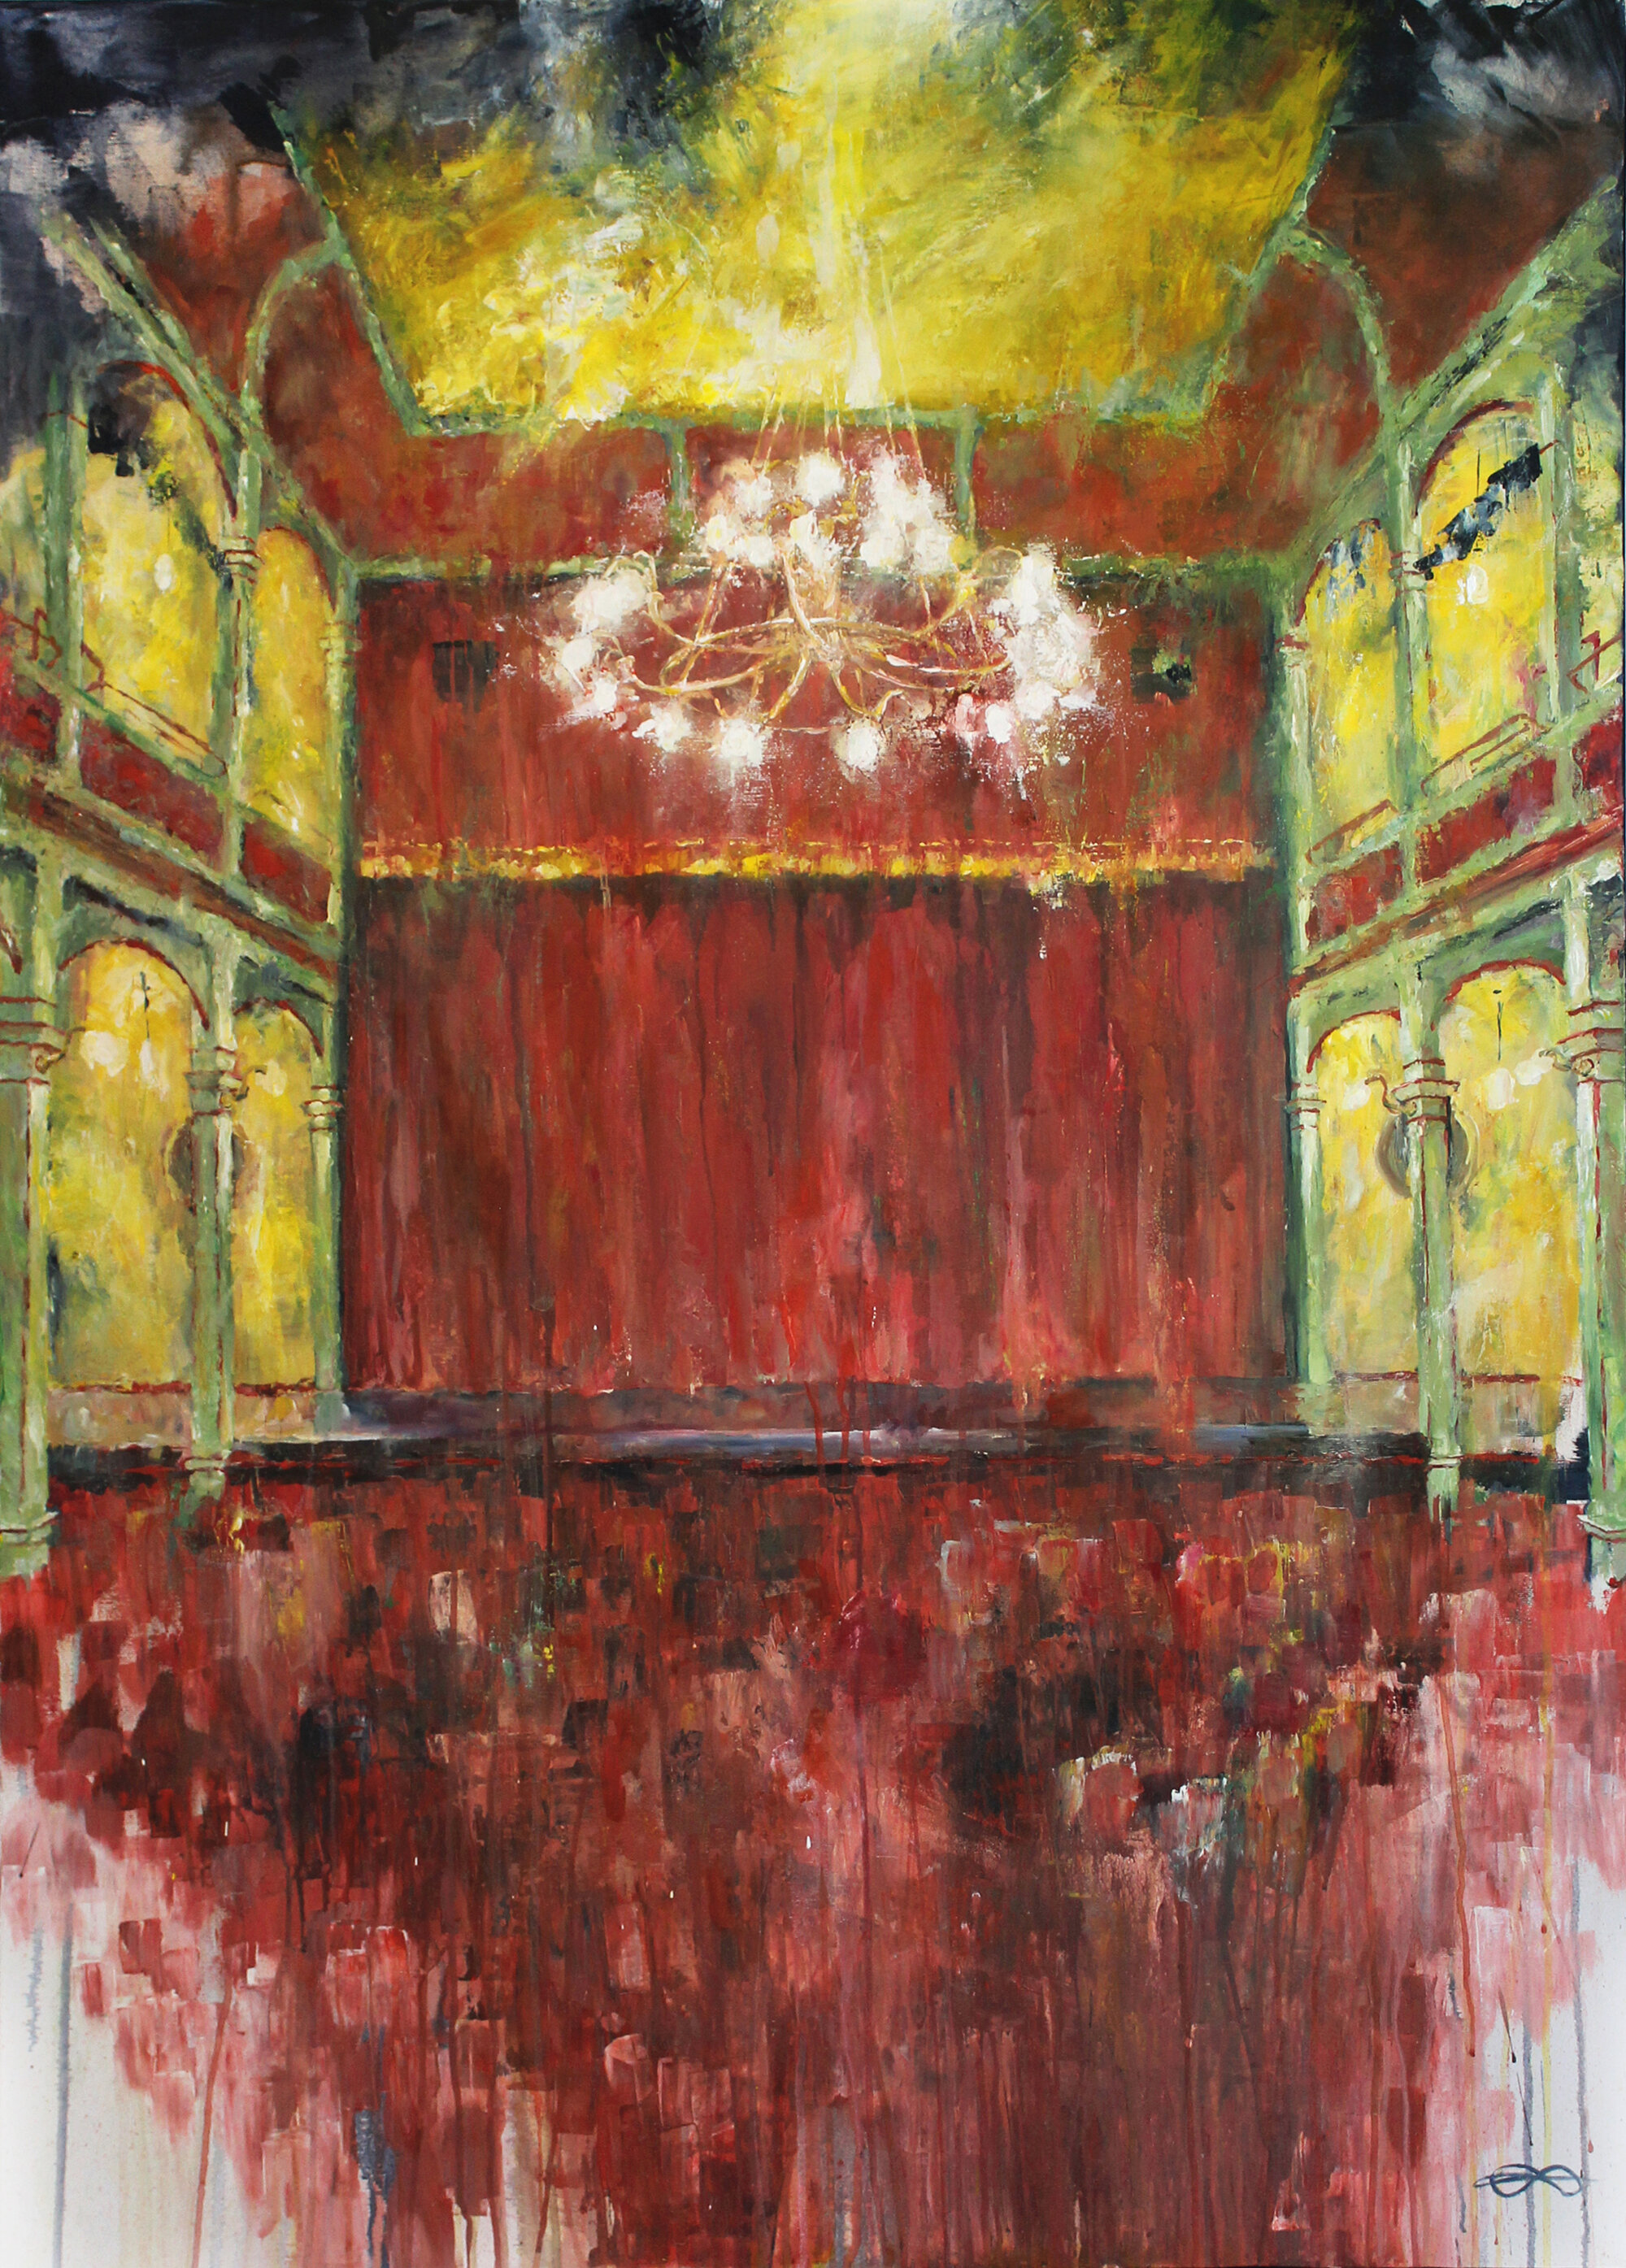 Tonhalle Wil - Lampenfieber (Stage Fright) / 2019 / acrylic on canvas / 140 x 100 cm